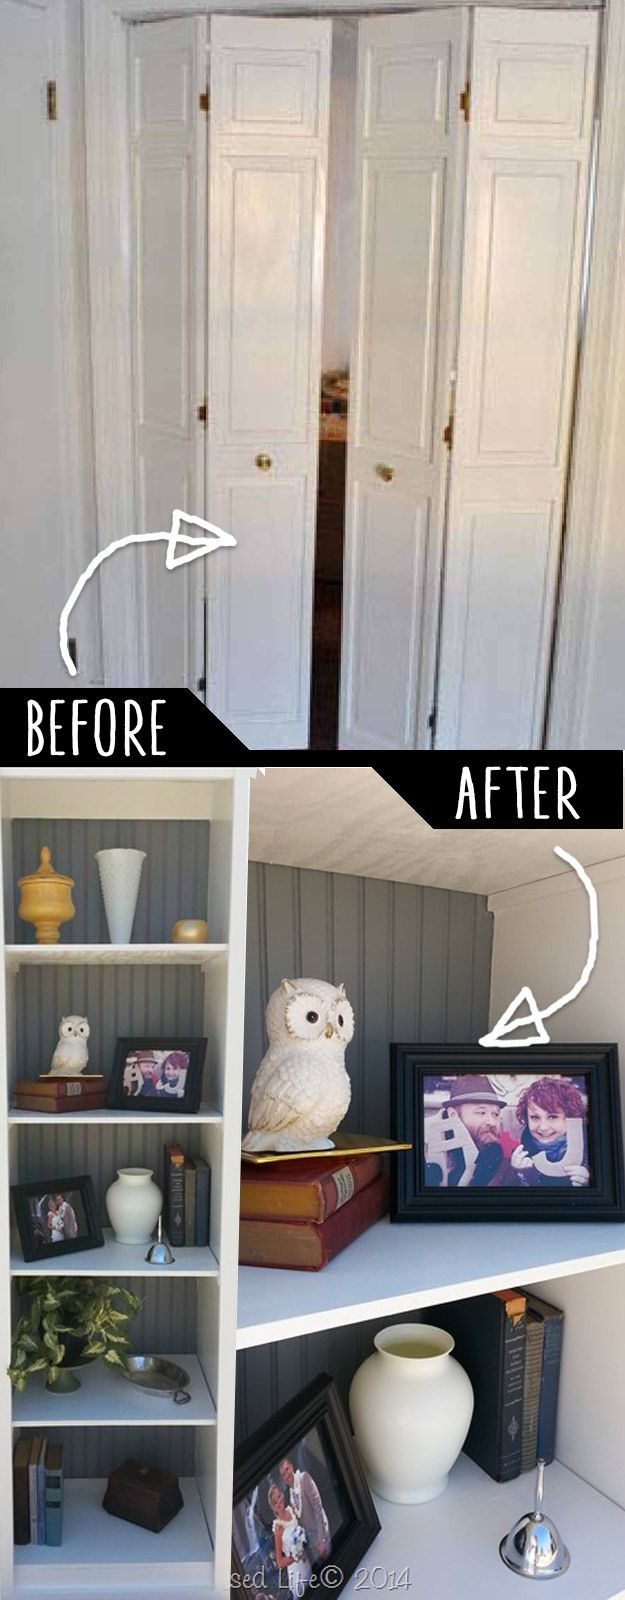 259 best images about diy ideas on pinterest crafts sharpie crafts and refurbished furniture - Do it yourself furniture ideas ...